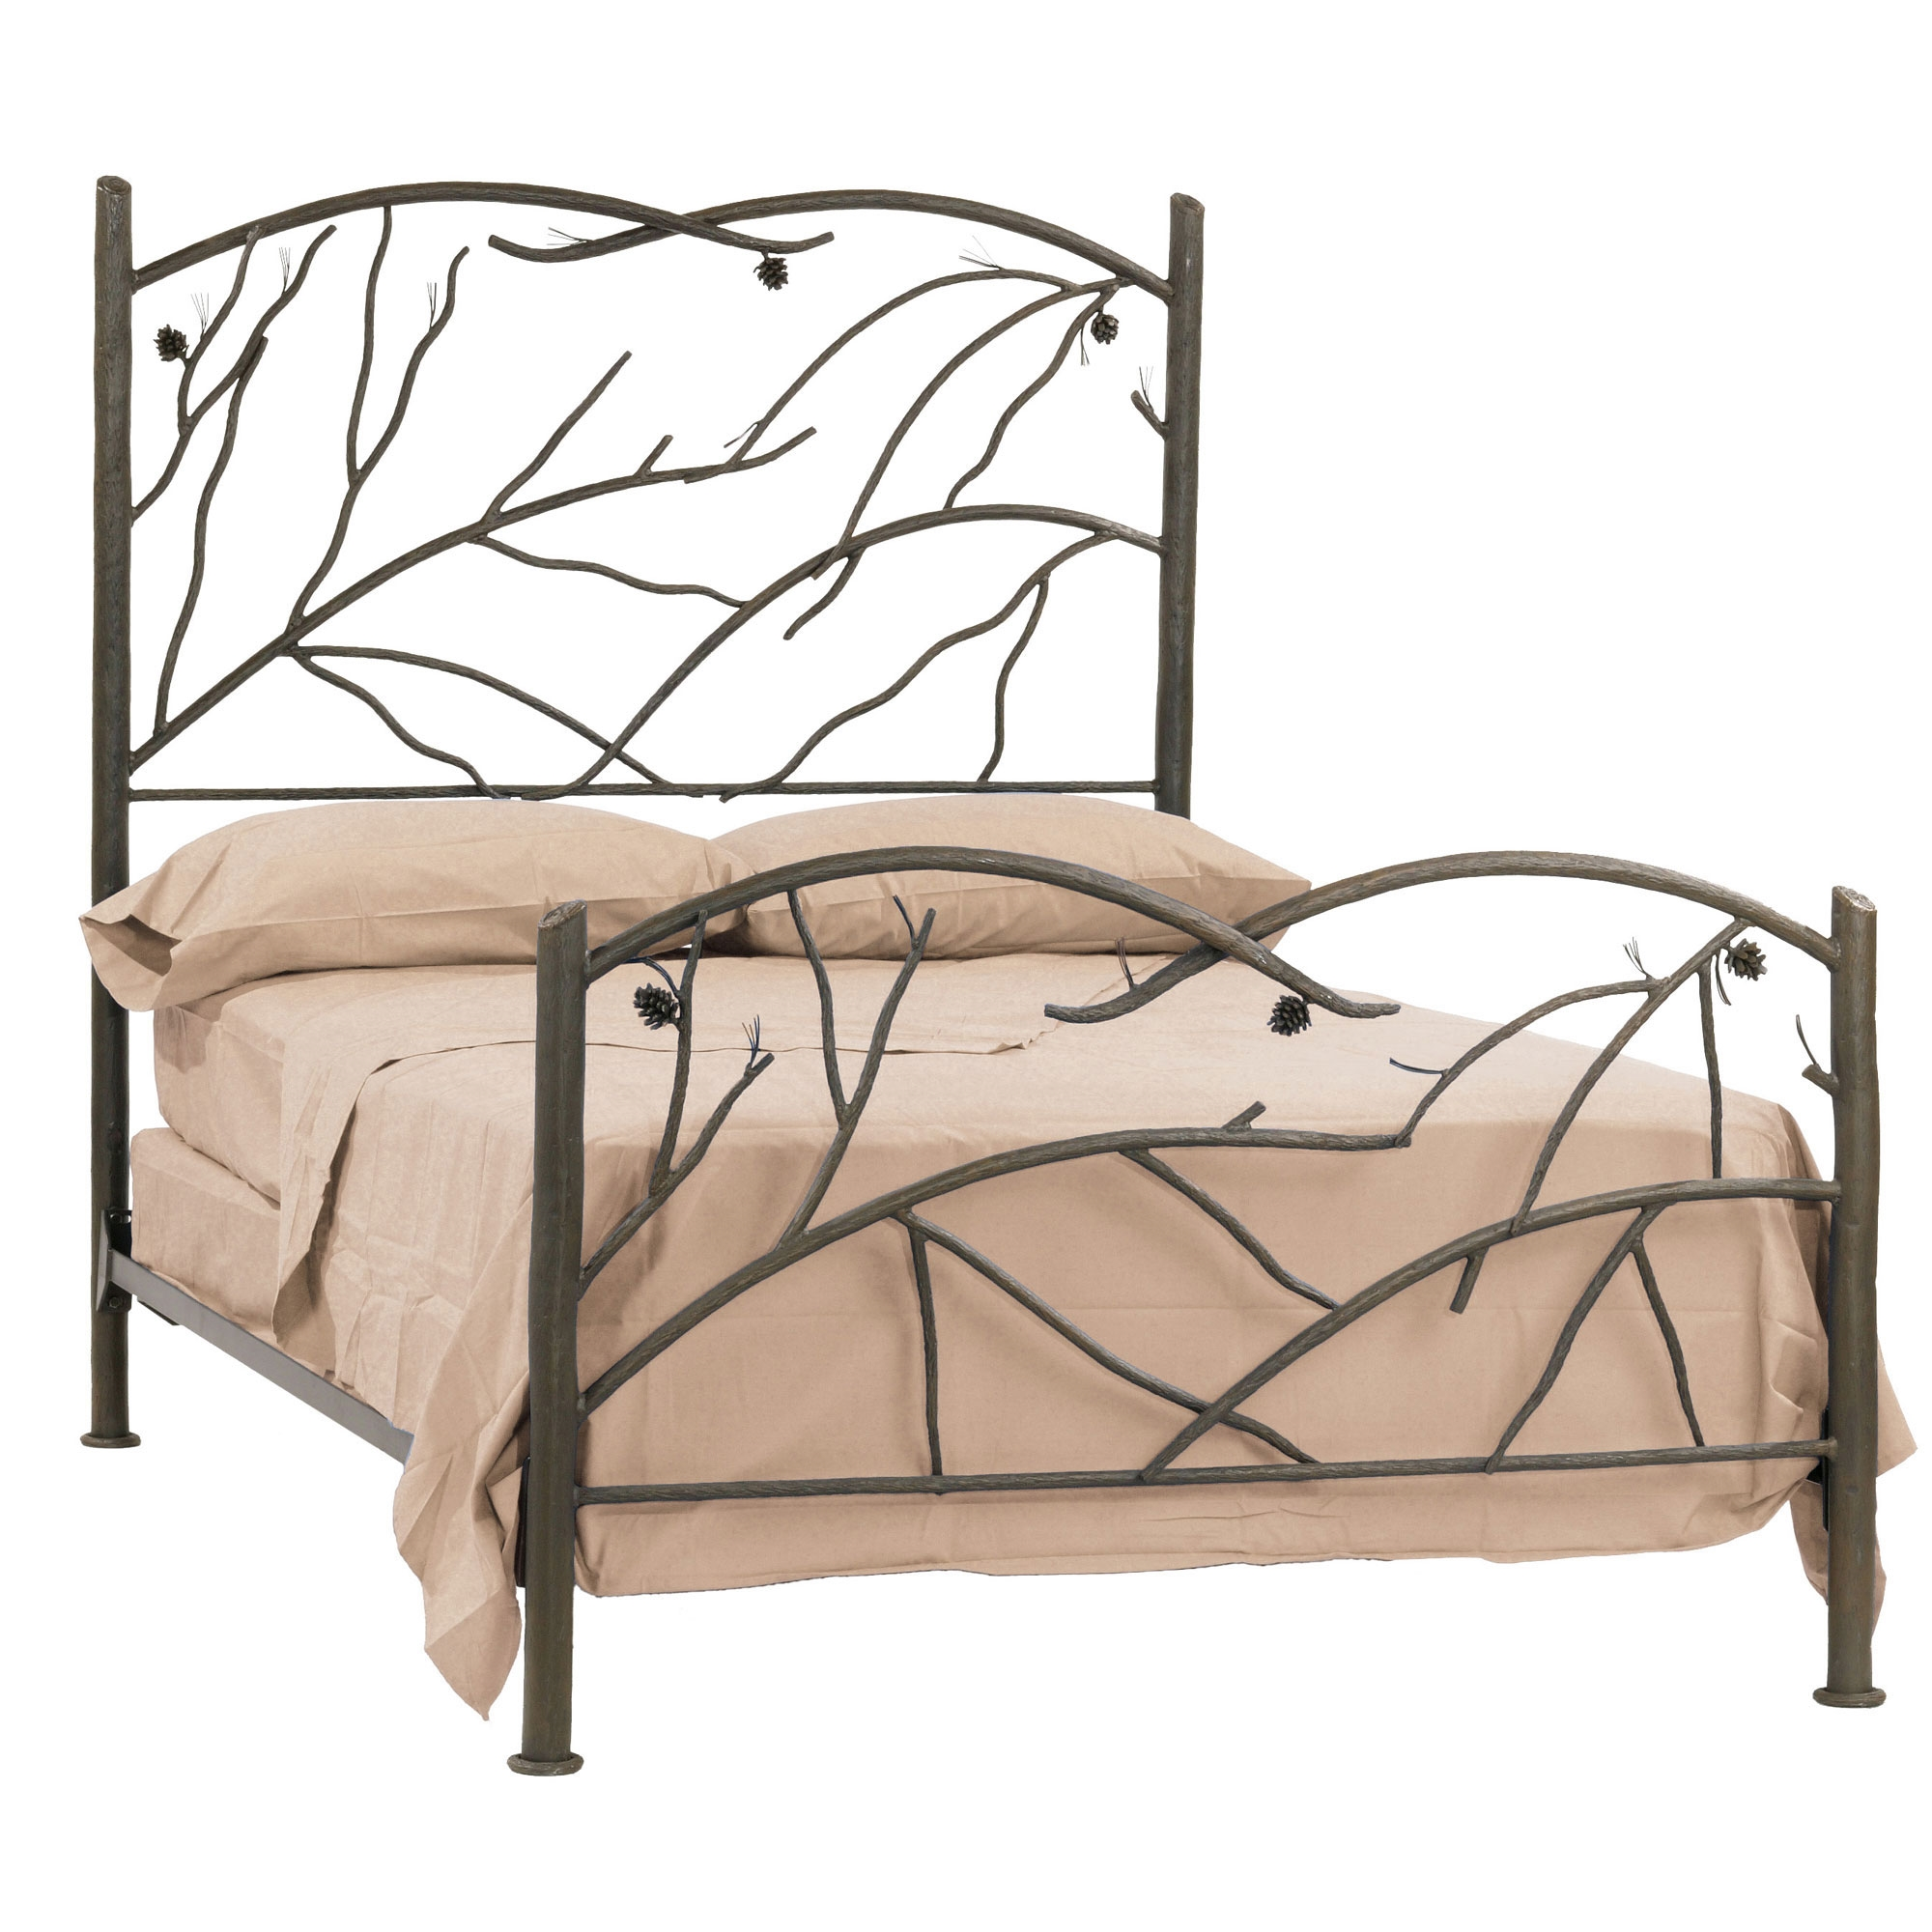 Wrought iron rustic pine bed by stone county ironworks Wrought iron headboard